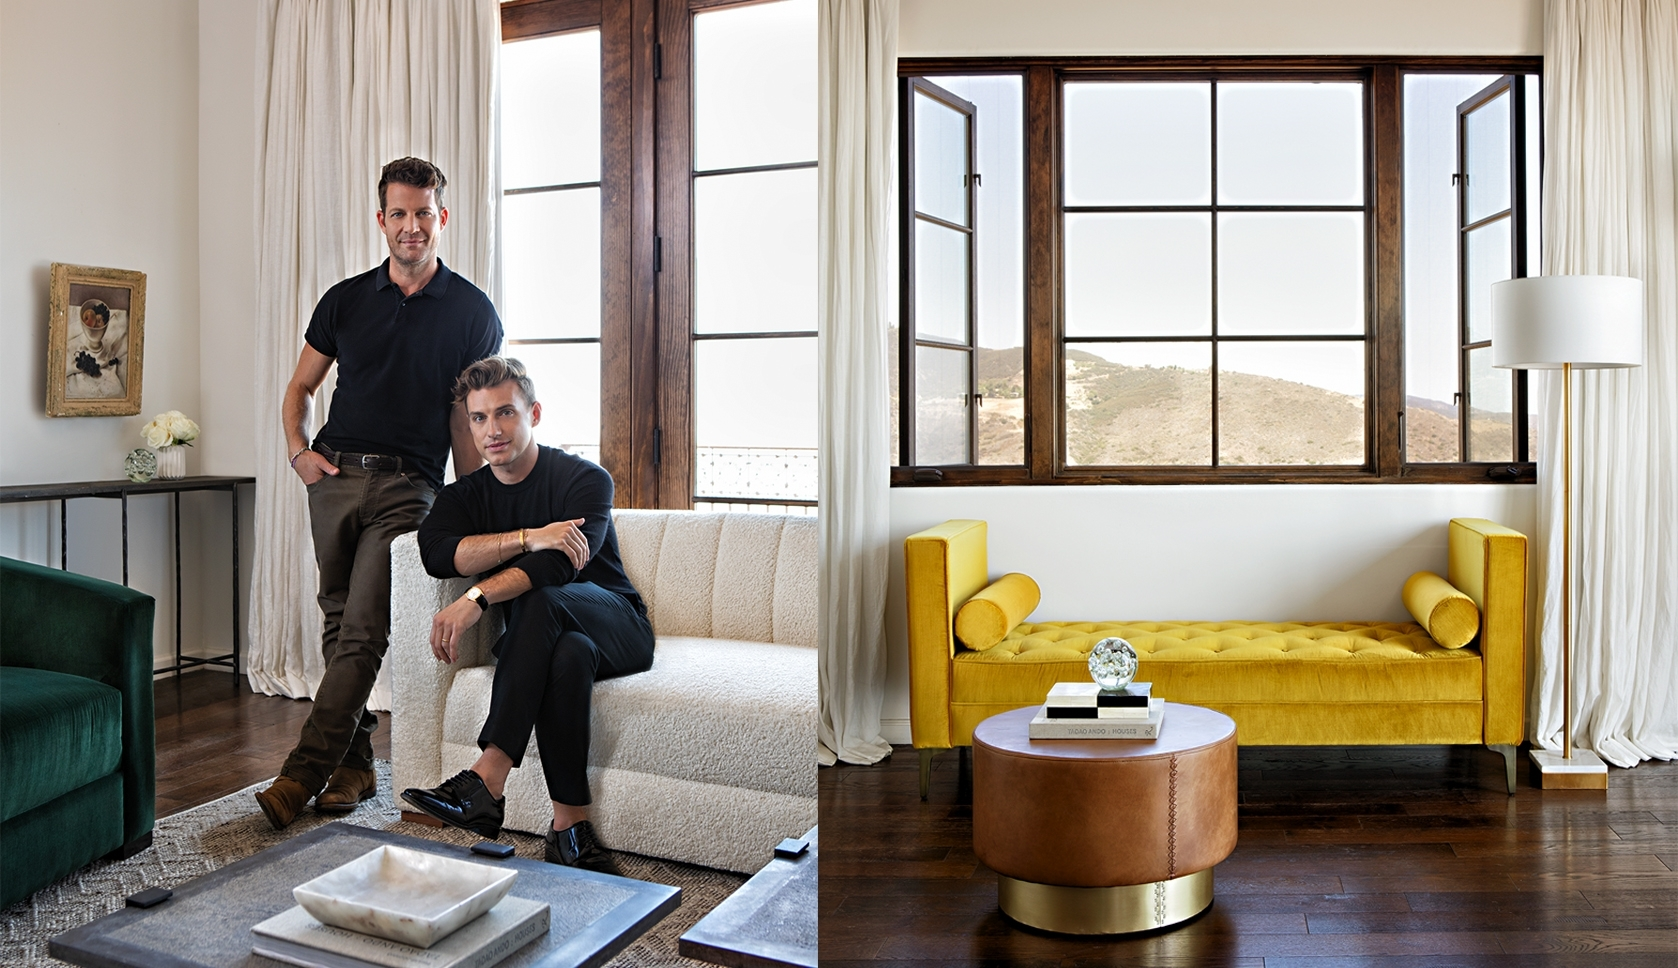 Nate Berkus & Jeremiah Brent's Newest Affordable Collection | Rue Within Soane 3 Piece Sectionals By Nate Berkus And Jeremiah Brent (Image 7 of 25)